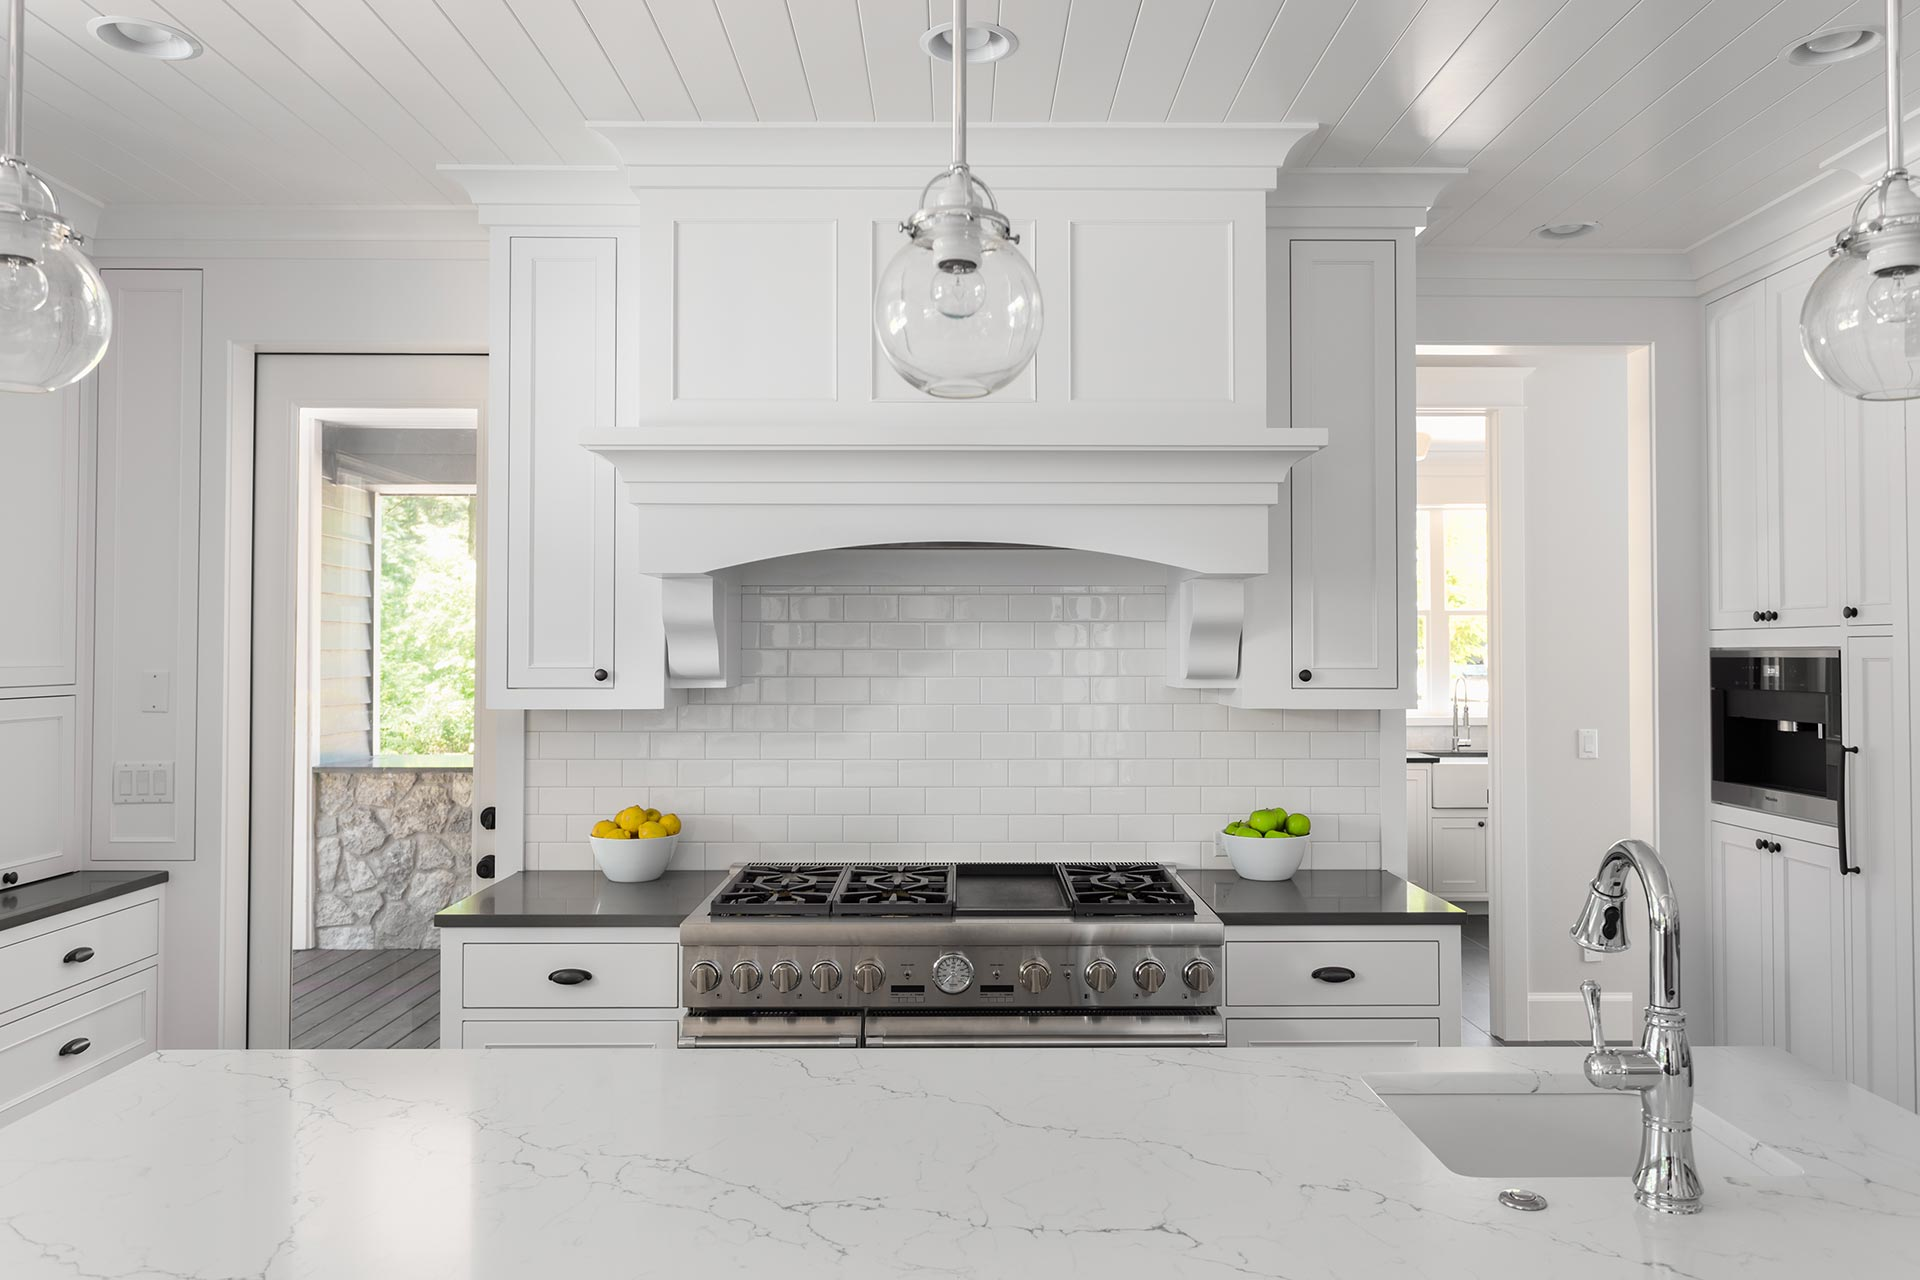 Porcelain slab kitchen countertop